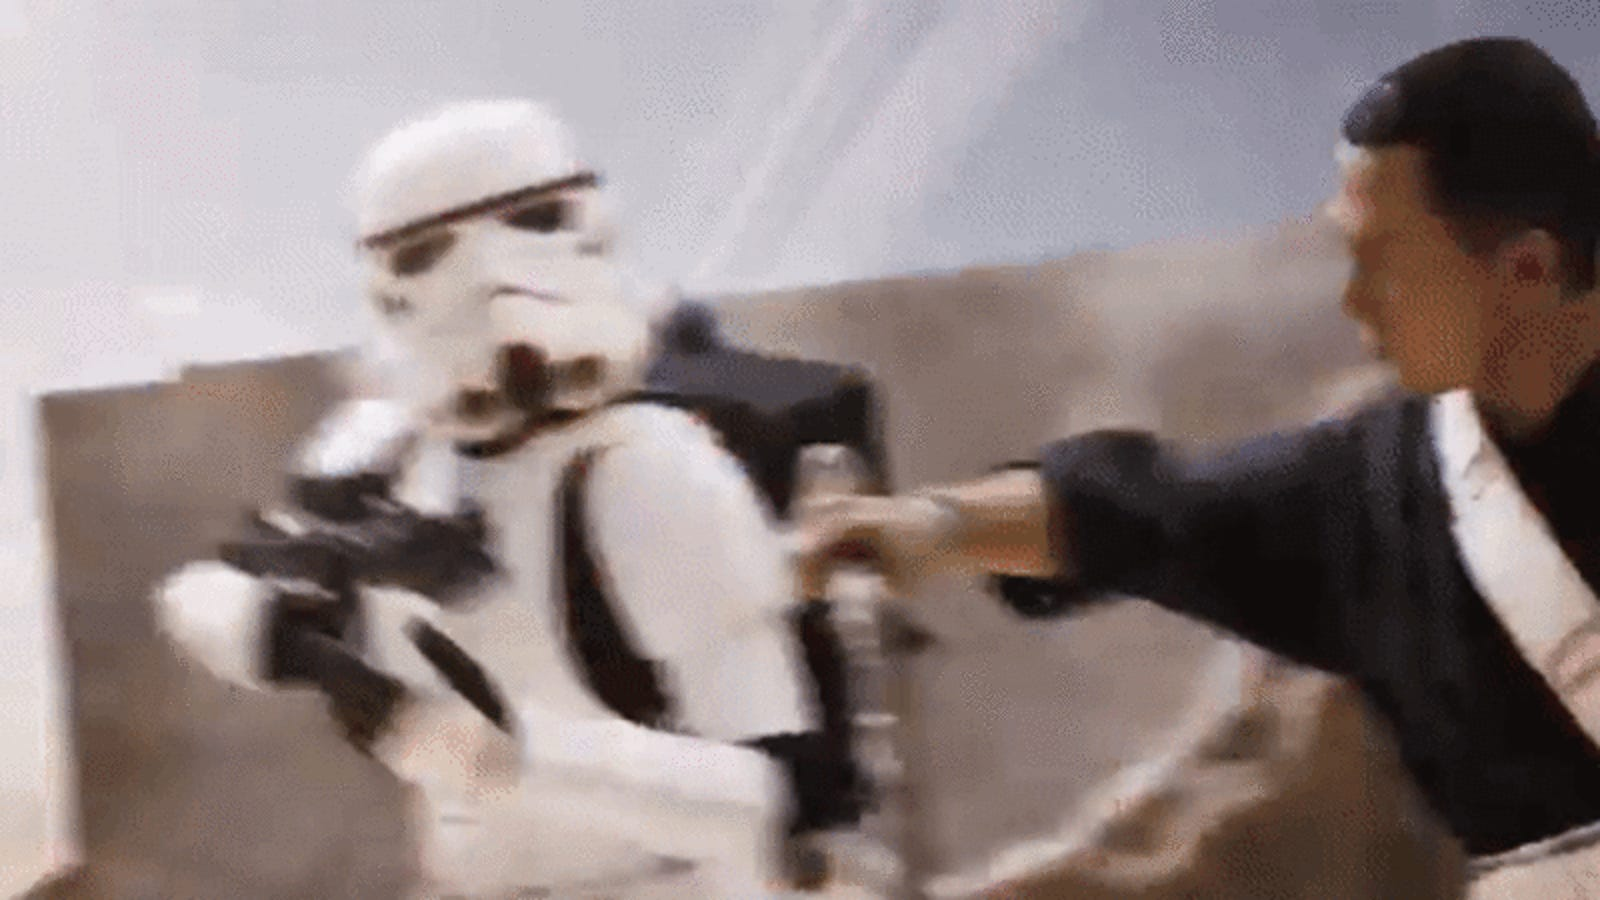 And Now, Hot Toys' Chirrut Imwe Figure Kicking the Crap Out of Some Stormtroopers